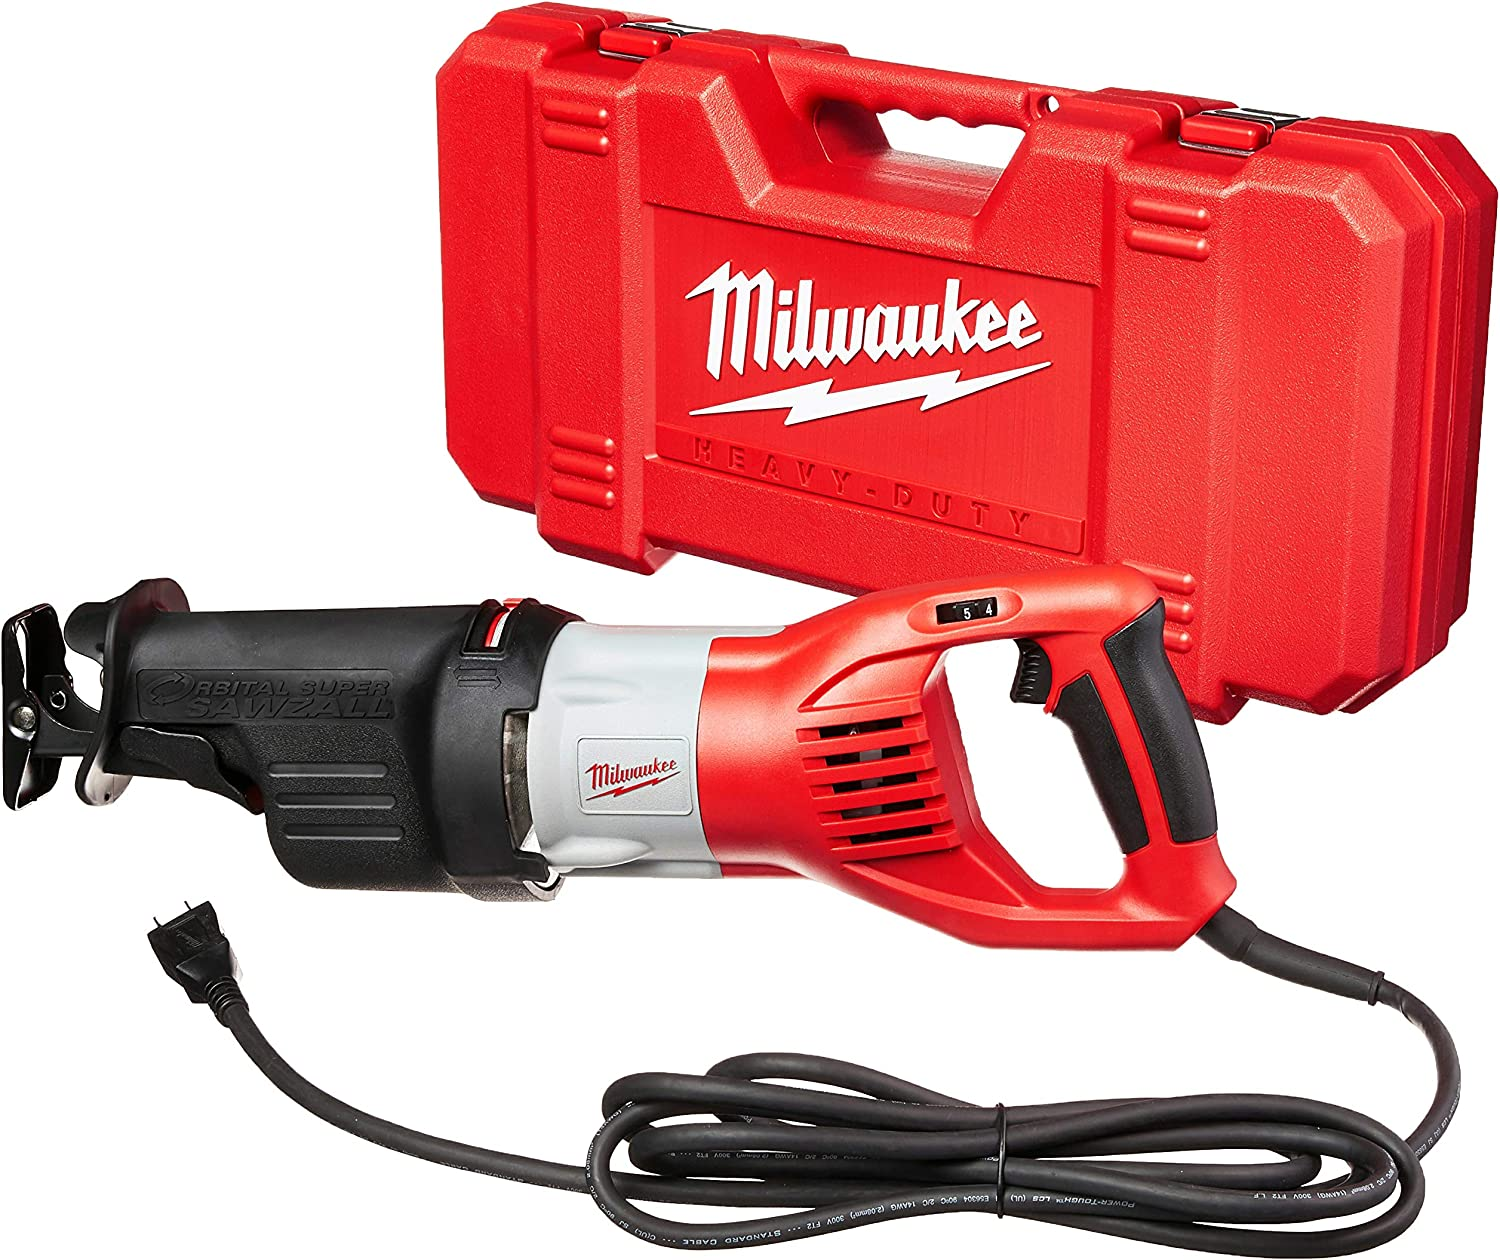 1. Milwaukee 6538-21 Super Sawzall